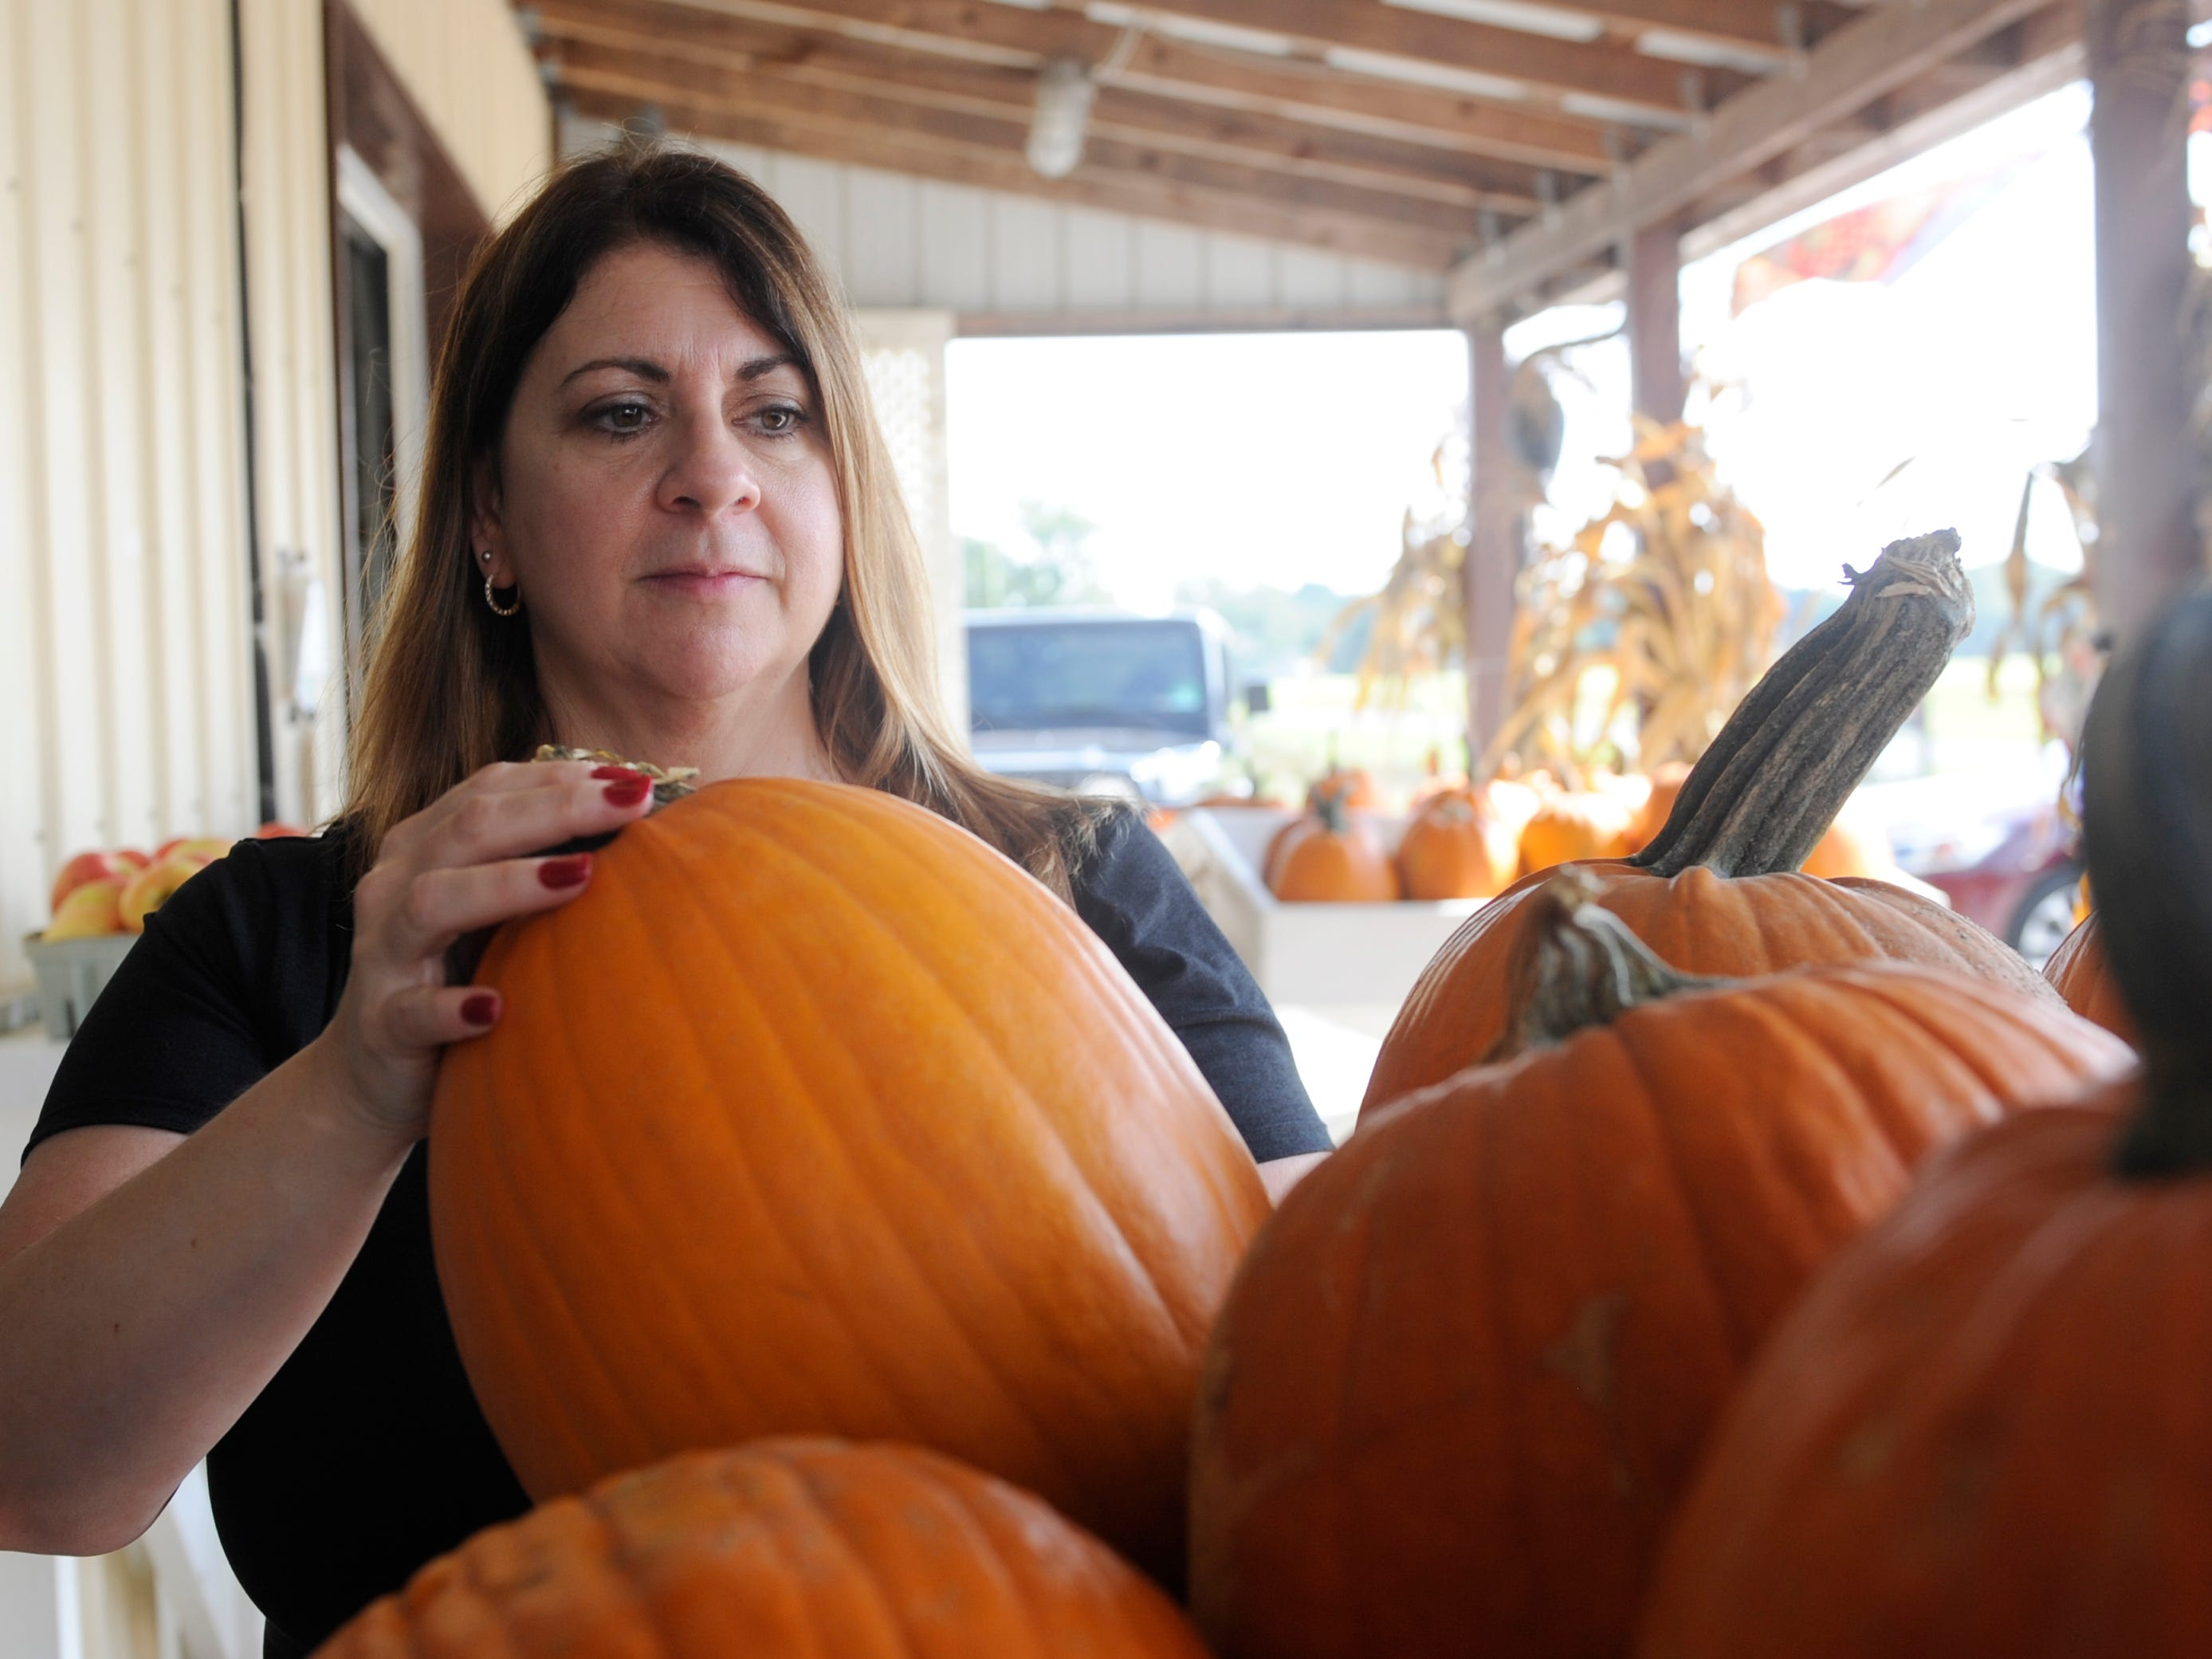 Long time, loyal customer, Anita Cavalier of Vineland, buys a pumpkin at Muzzarelli Farms on East Oak Road on Thursday, October 4, 2018.